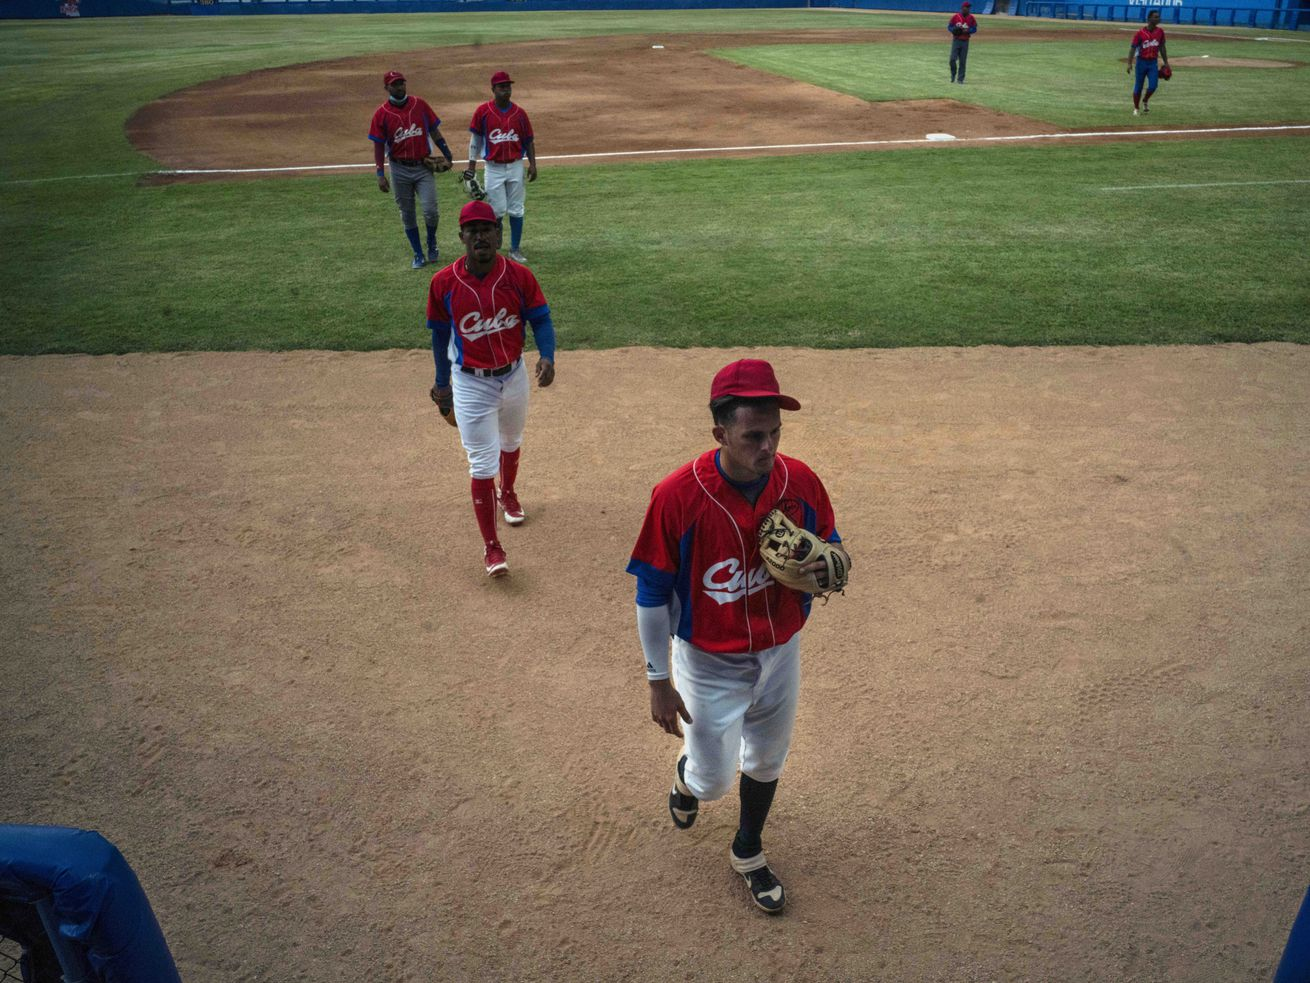 Several Cuban baseball players walk on the field during a break from the training session at the Estadio Latinoamericano in Havana, Cuba.